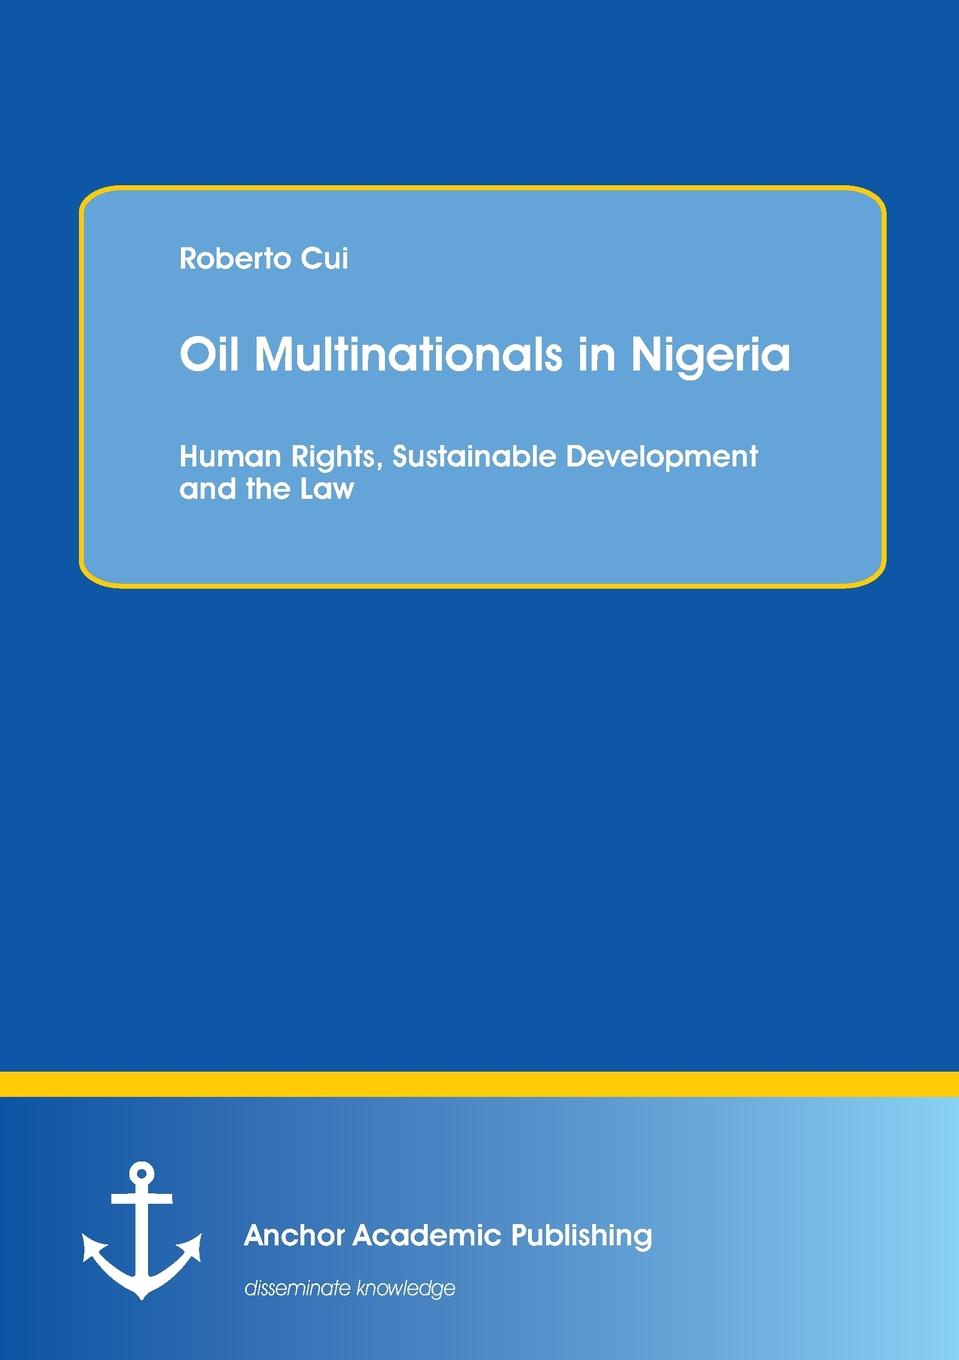 Roberto Cui Oil Multinationals in Nigeria. Human Rights, Sustainable Development and the Law